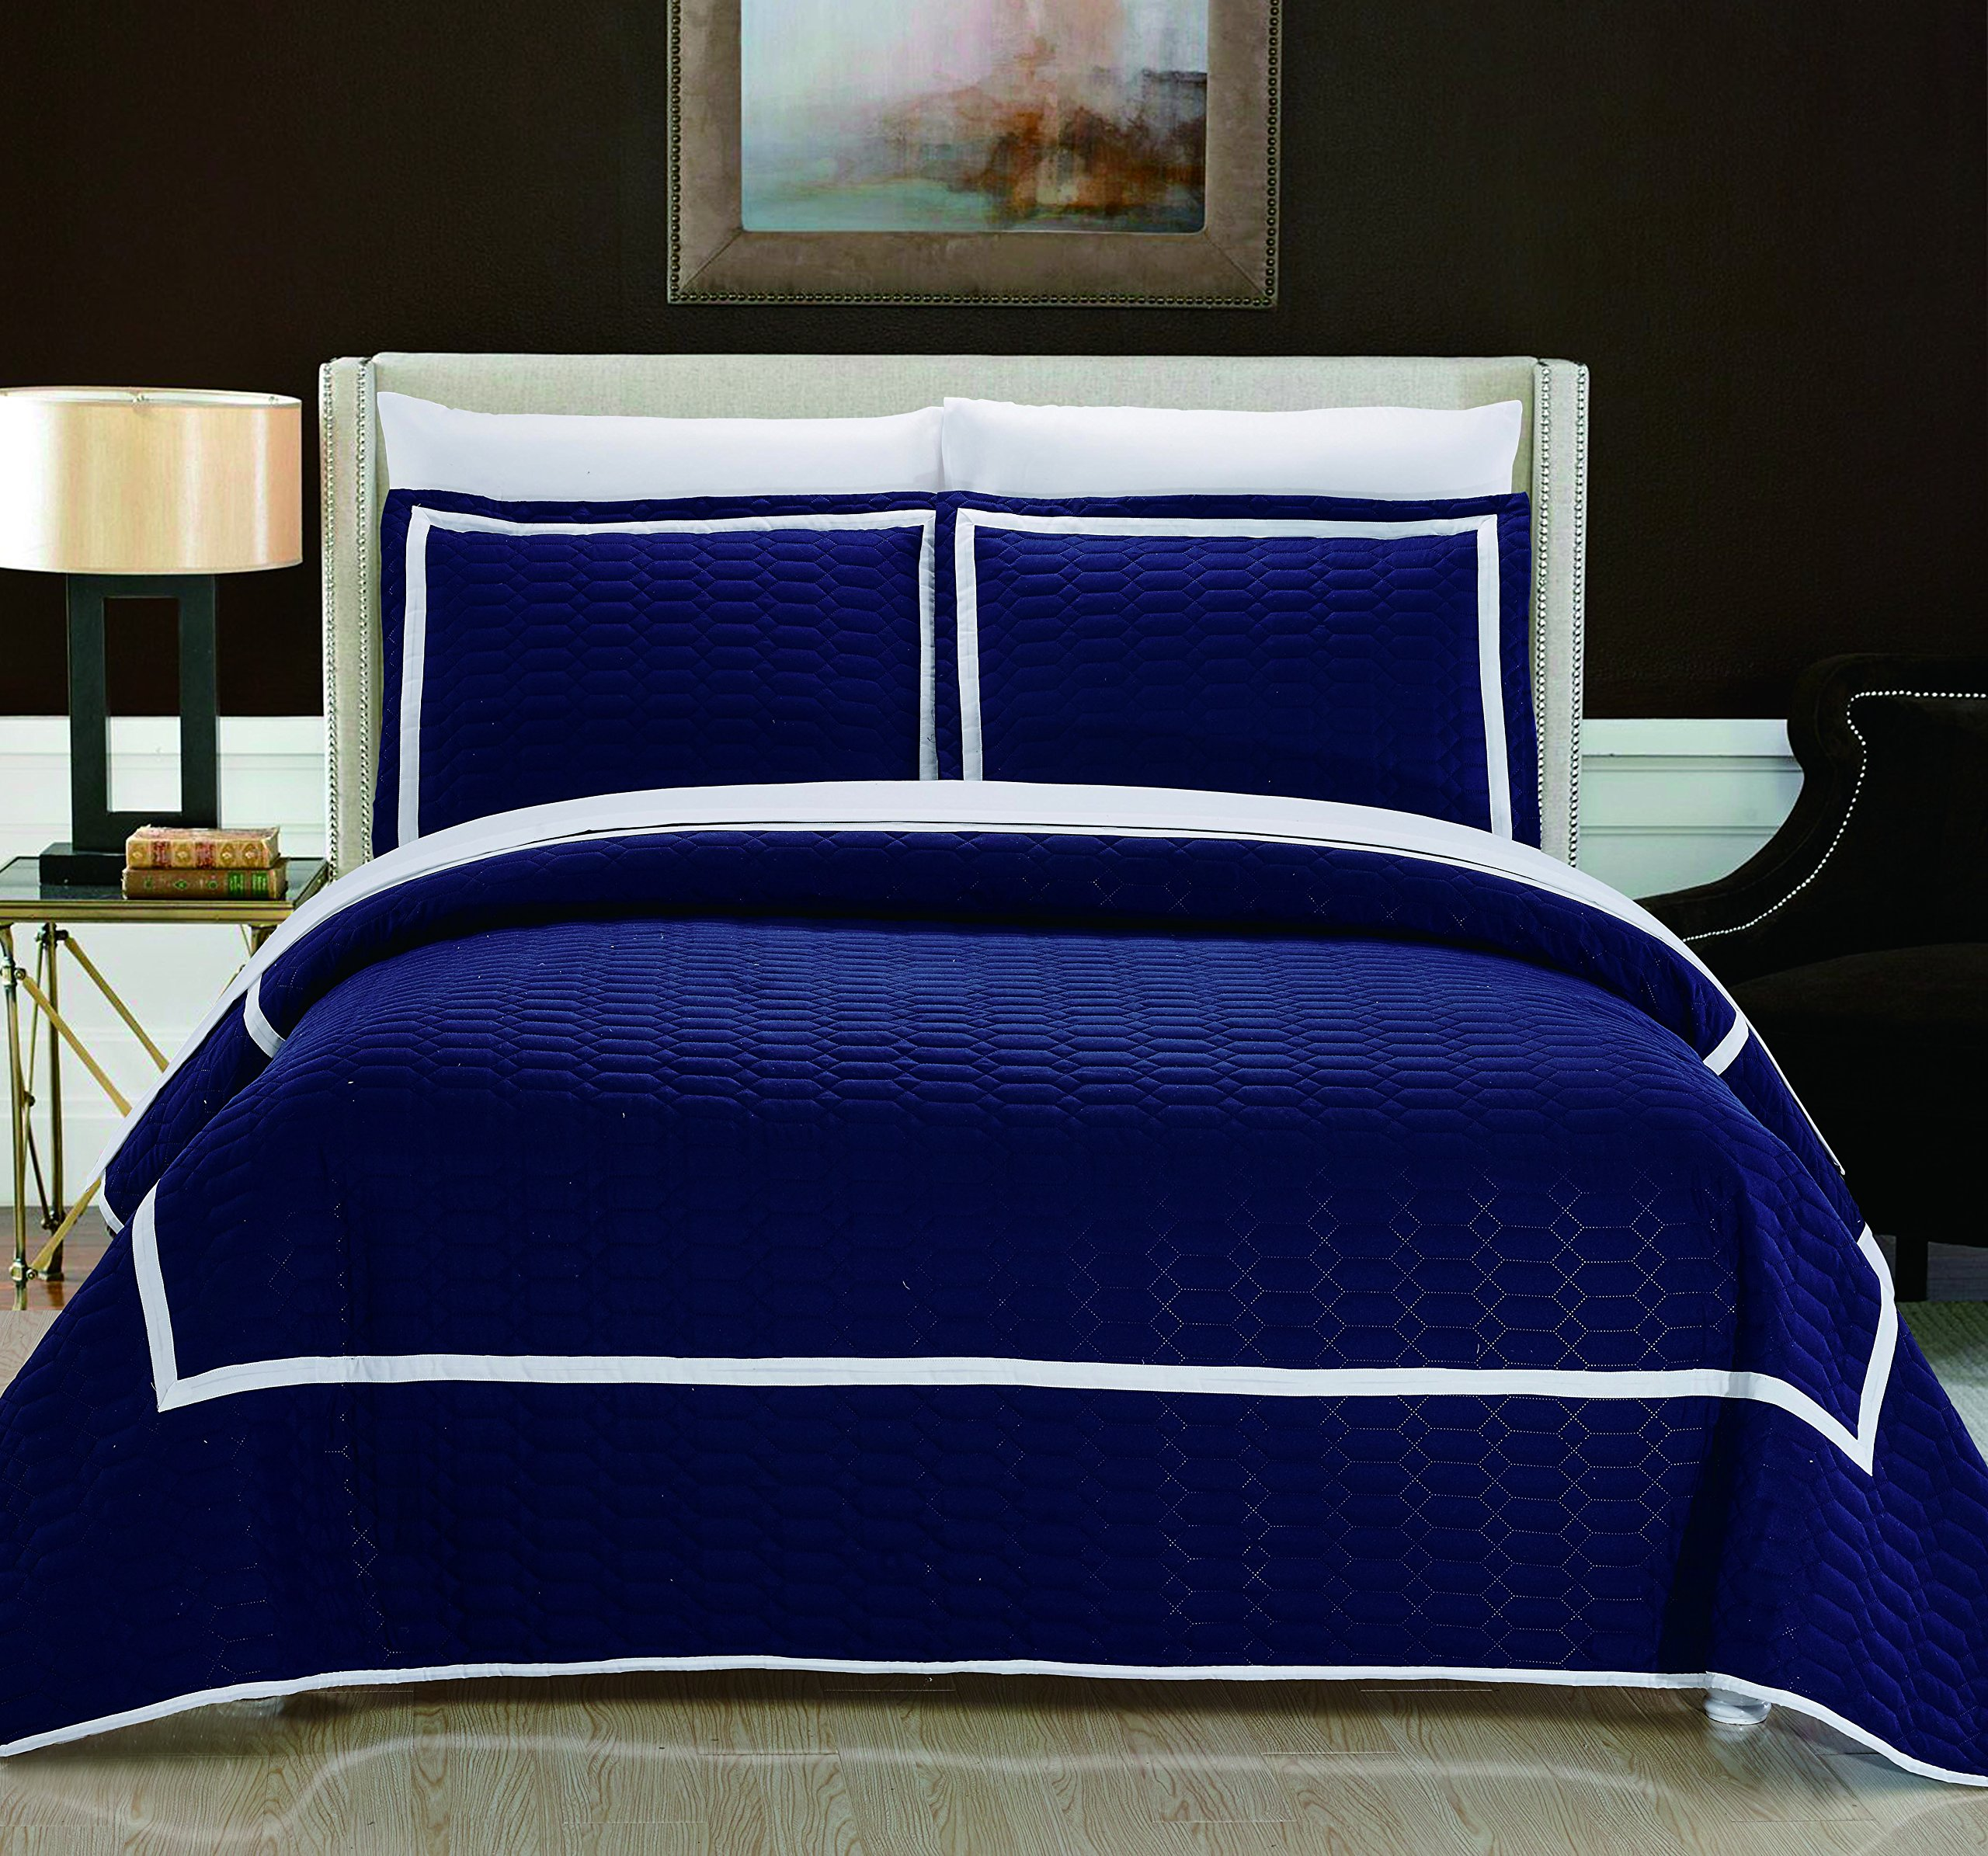 Chic Home 3 Piece Birmingham Hotel Collection 2 Tone Banded Quilted Geometrical Embroidered, Quilt Set, Queen, Navy